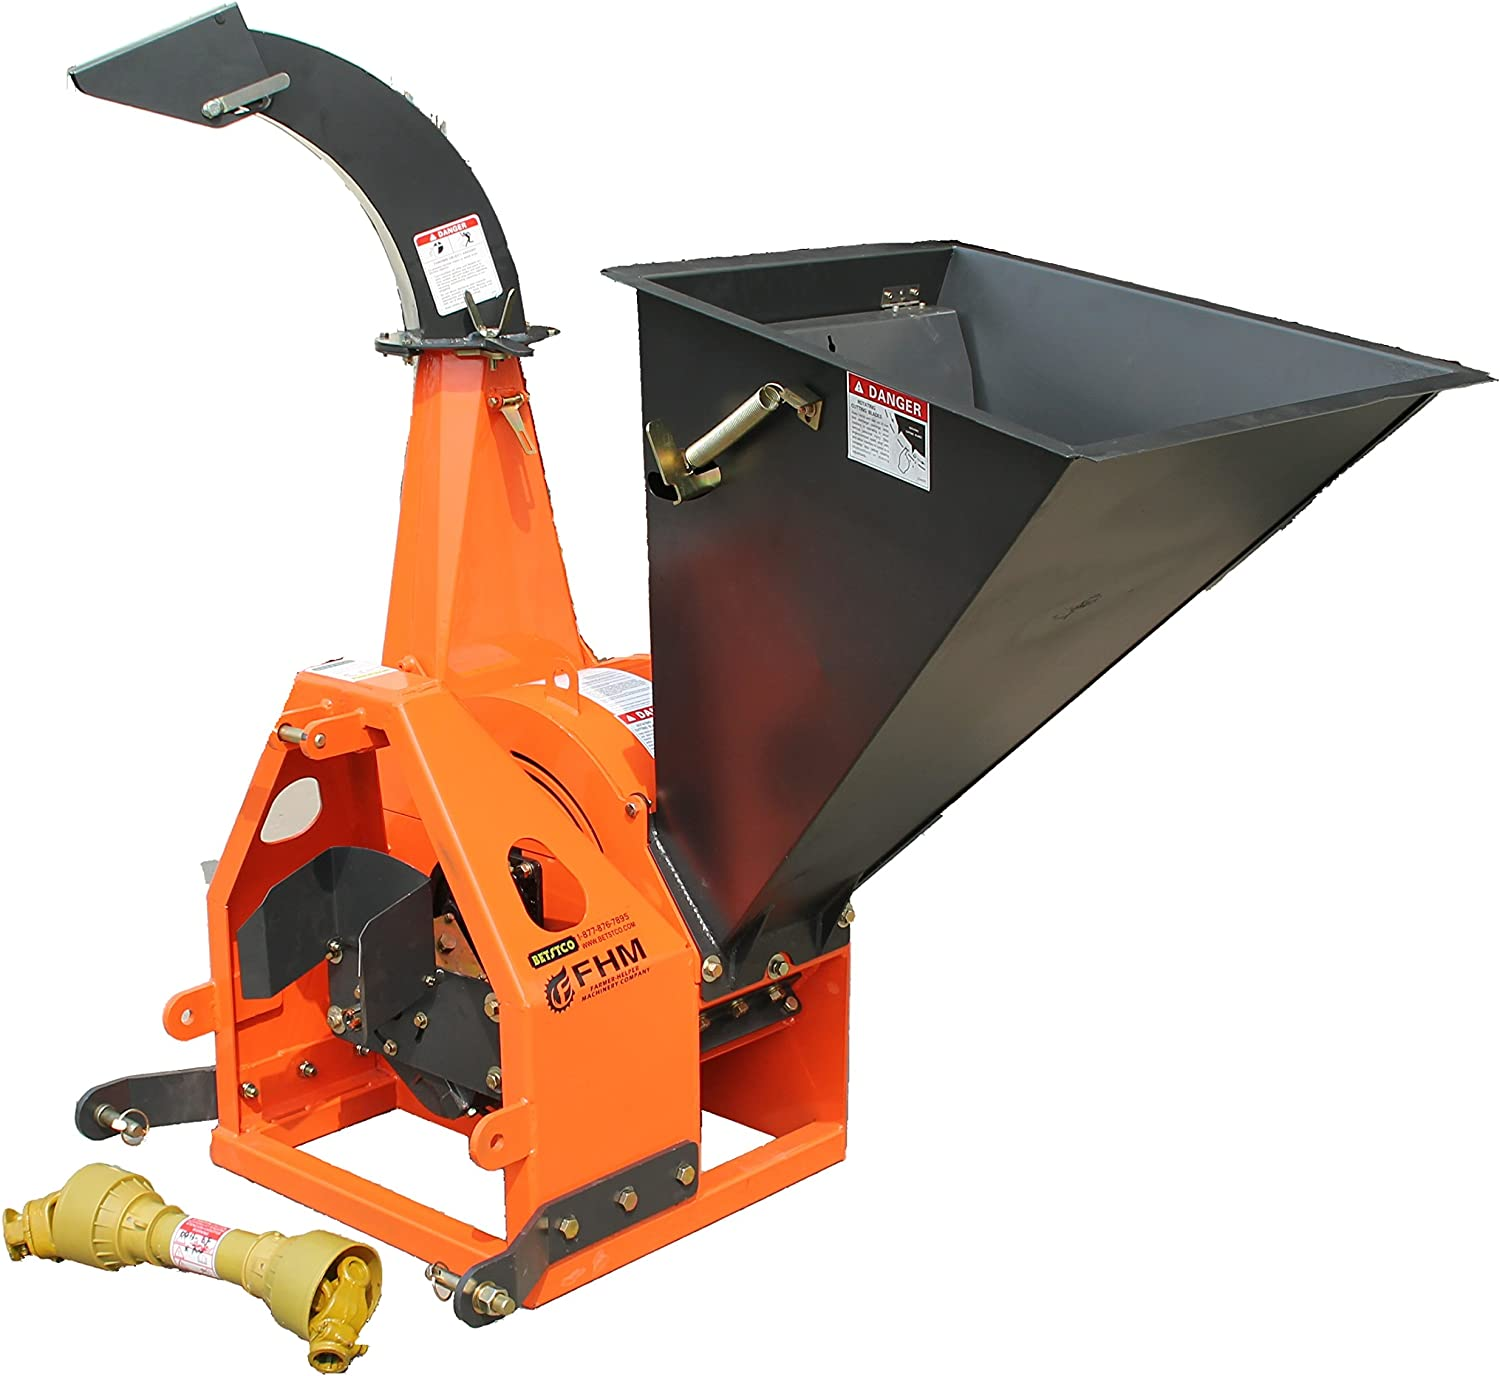 Farmer-Helper 6 Gravity Feed Drum Wood Chipper 3 point Requires a tractor. Not a standalone unit.